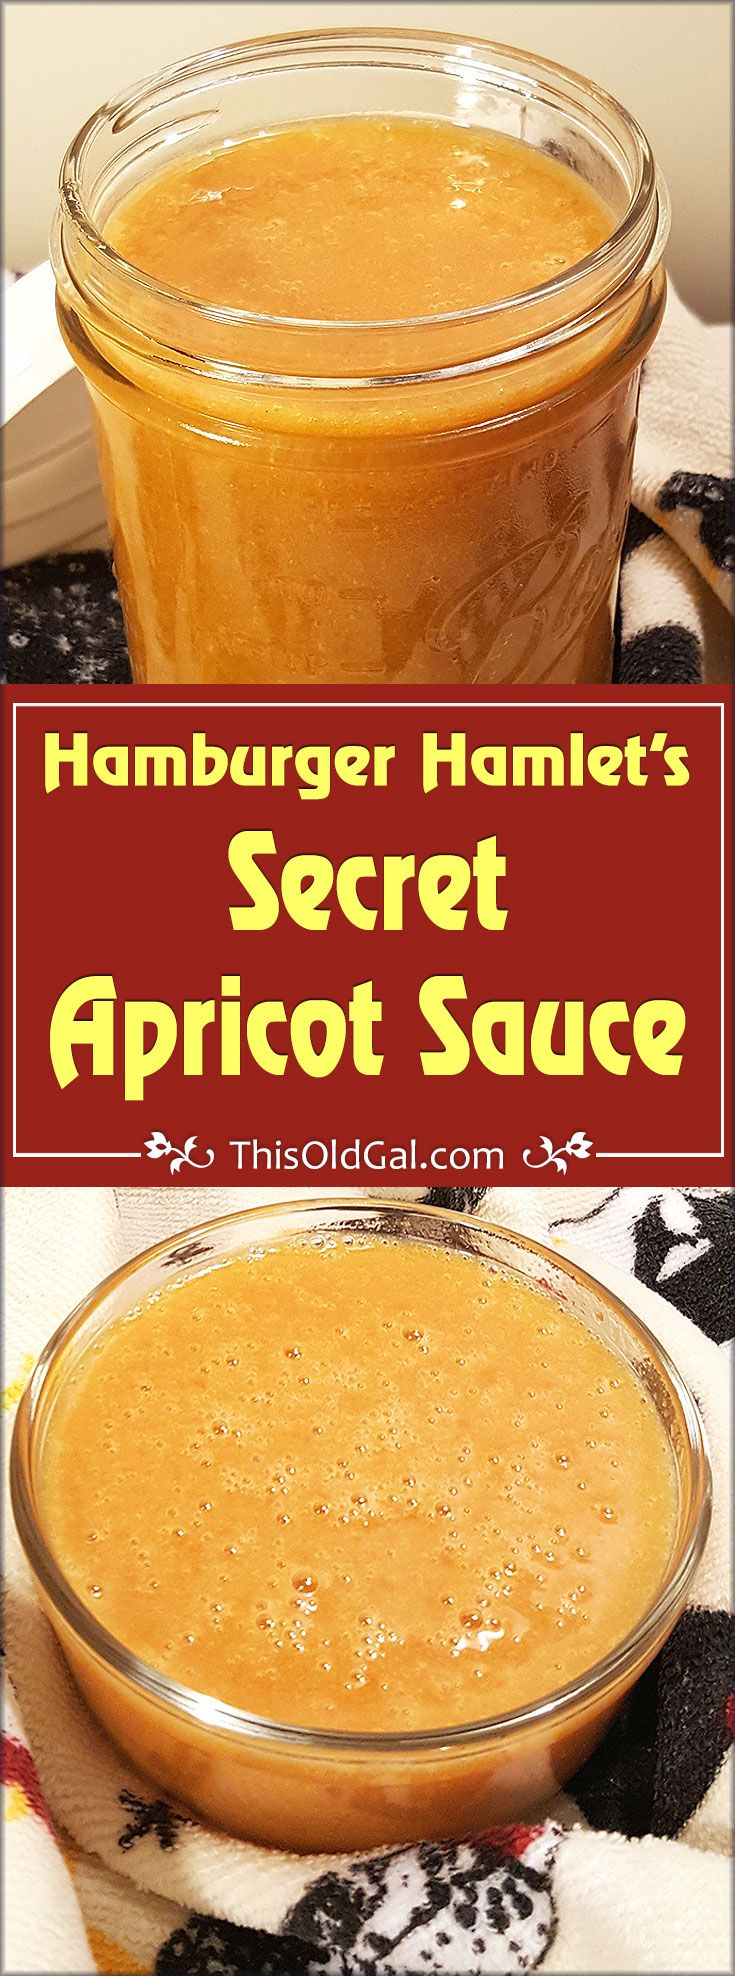 Change to wf orange marmalade and use pineapple drops?  Hamburger Hamlet's Secret Apricot Sauce is a sweet and tangy dipping sauce for their Famous Chicken Wings Platter, Fried Zucchini, Egg Rolls and more. via @thisoldgalcooks